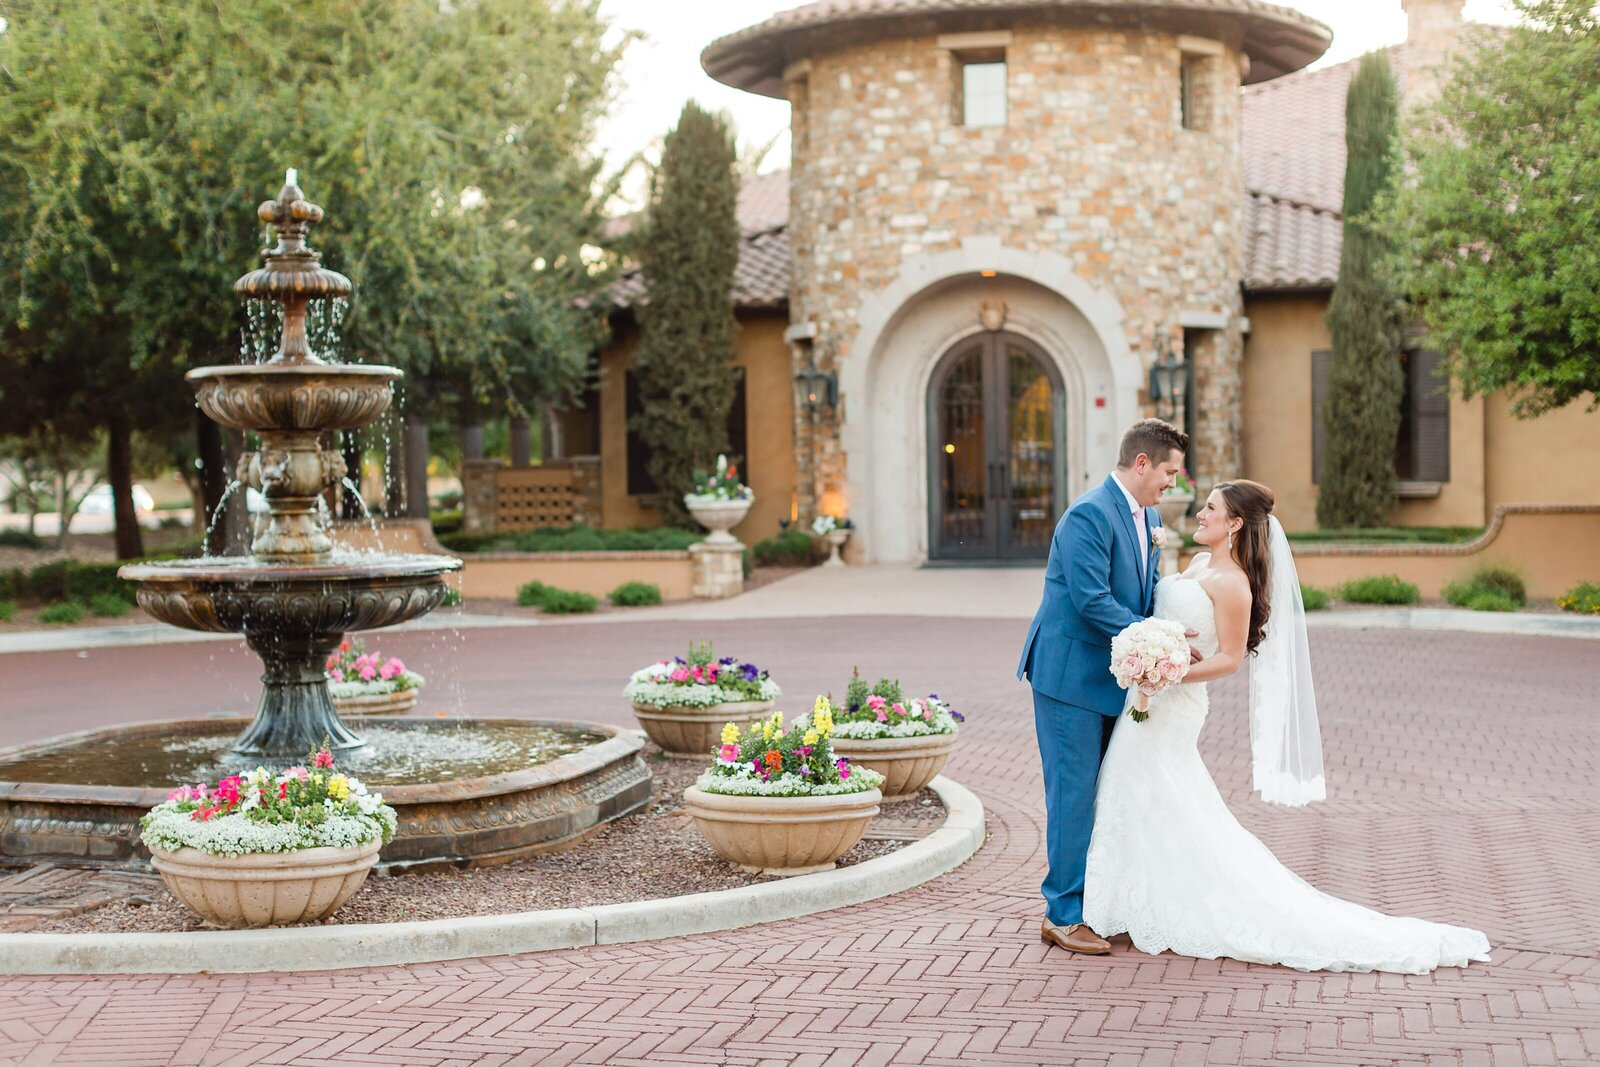 bride-and-groom-by-fountain